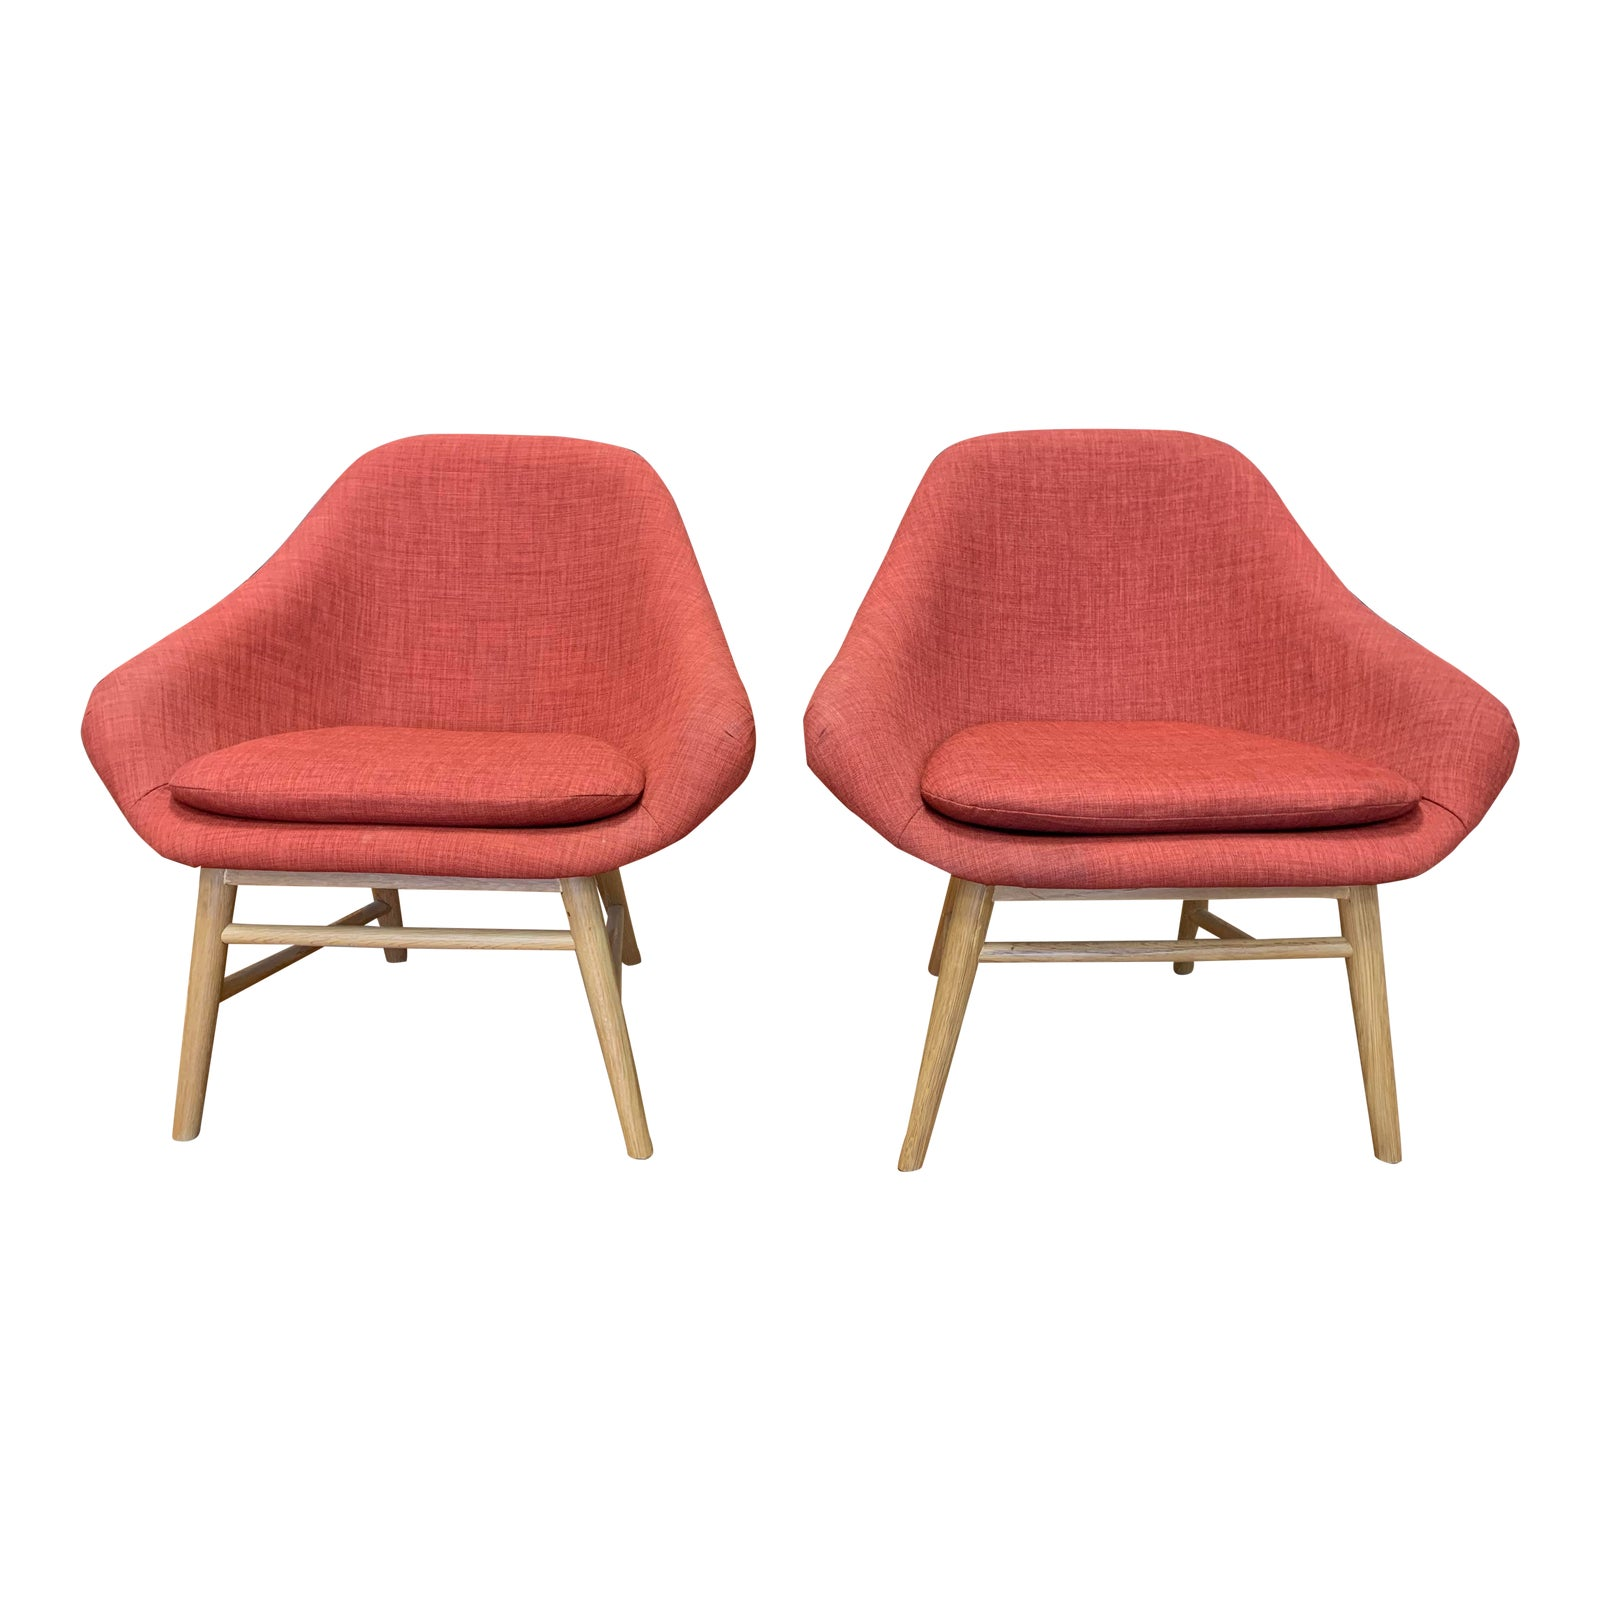 Outstanding West Elm Scoop Lounge Chair A Pair Design Plus Gallery Squirreltailoven Fun Painted Chair Ideas Images Squirreltailovenorg